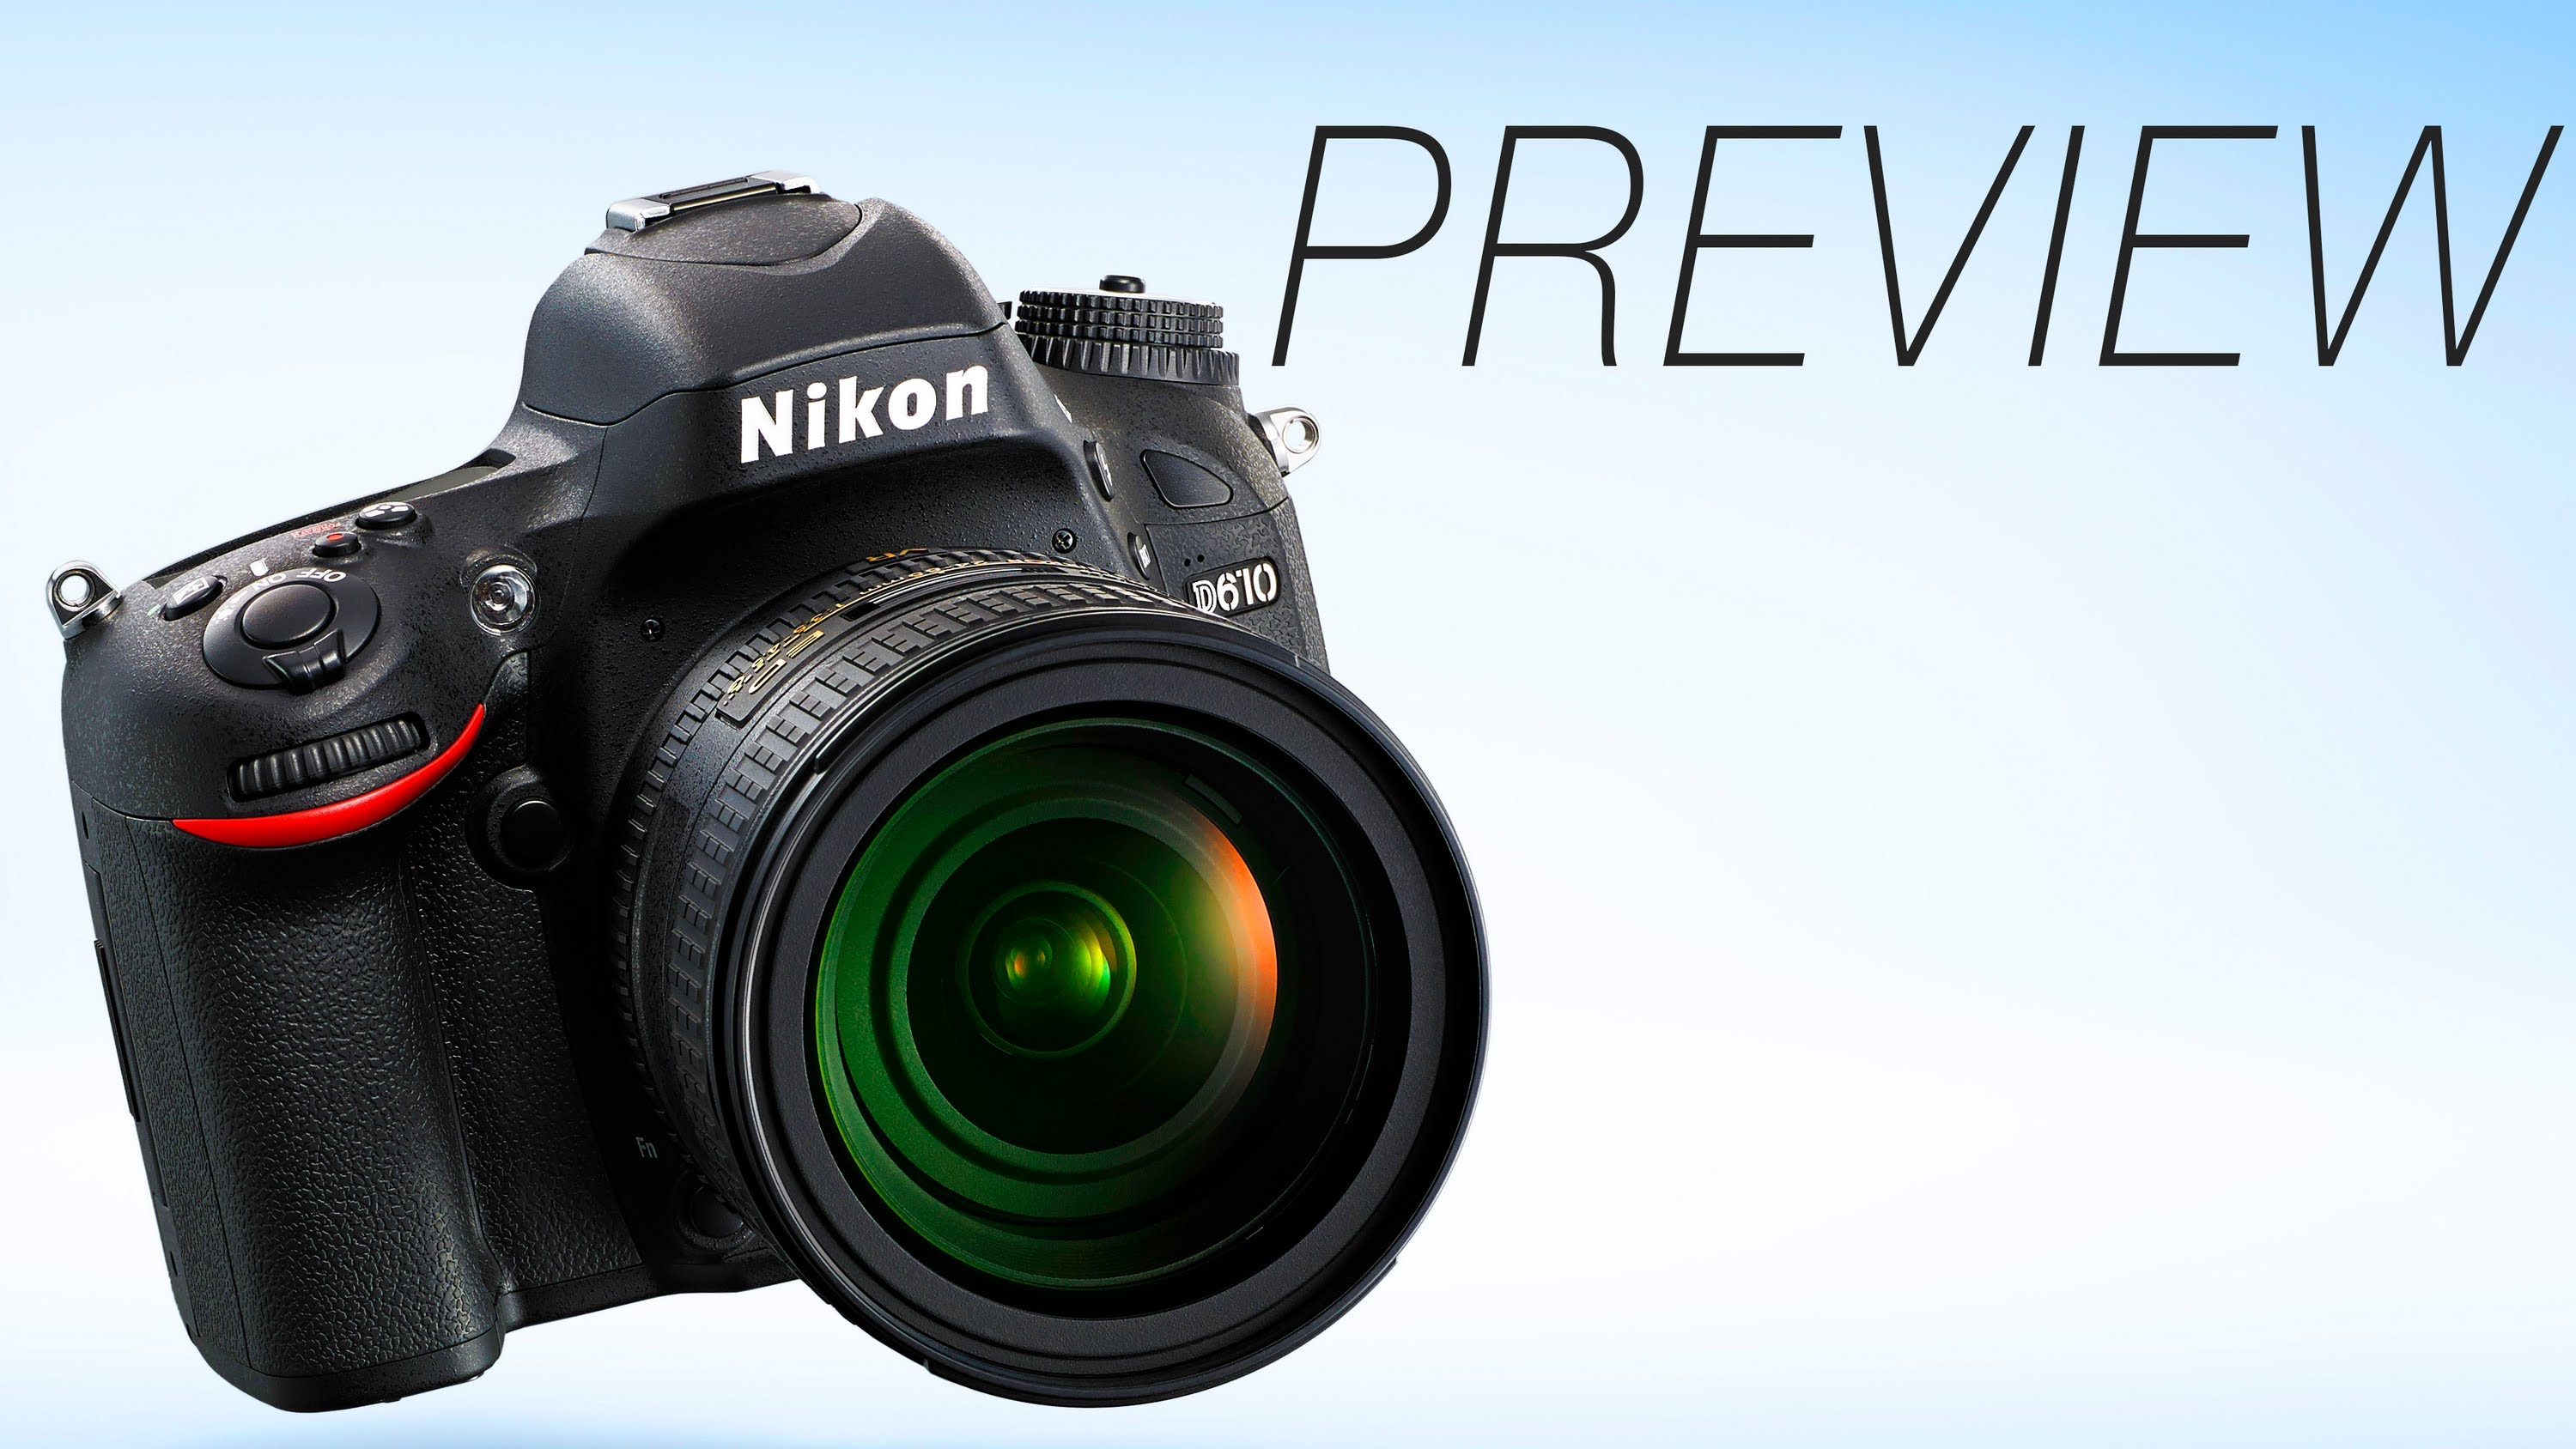 Enhance your Photography Skills Along with The Nikon D3100 Digital slr